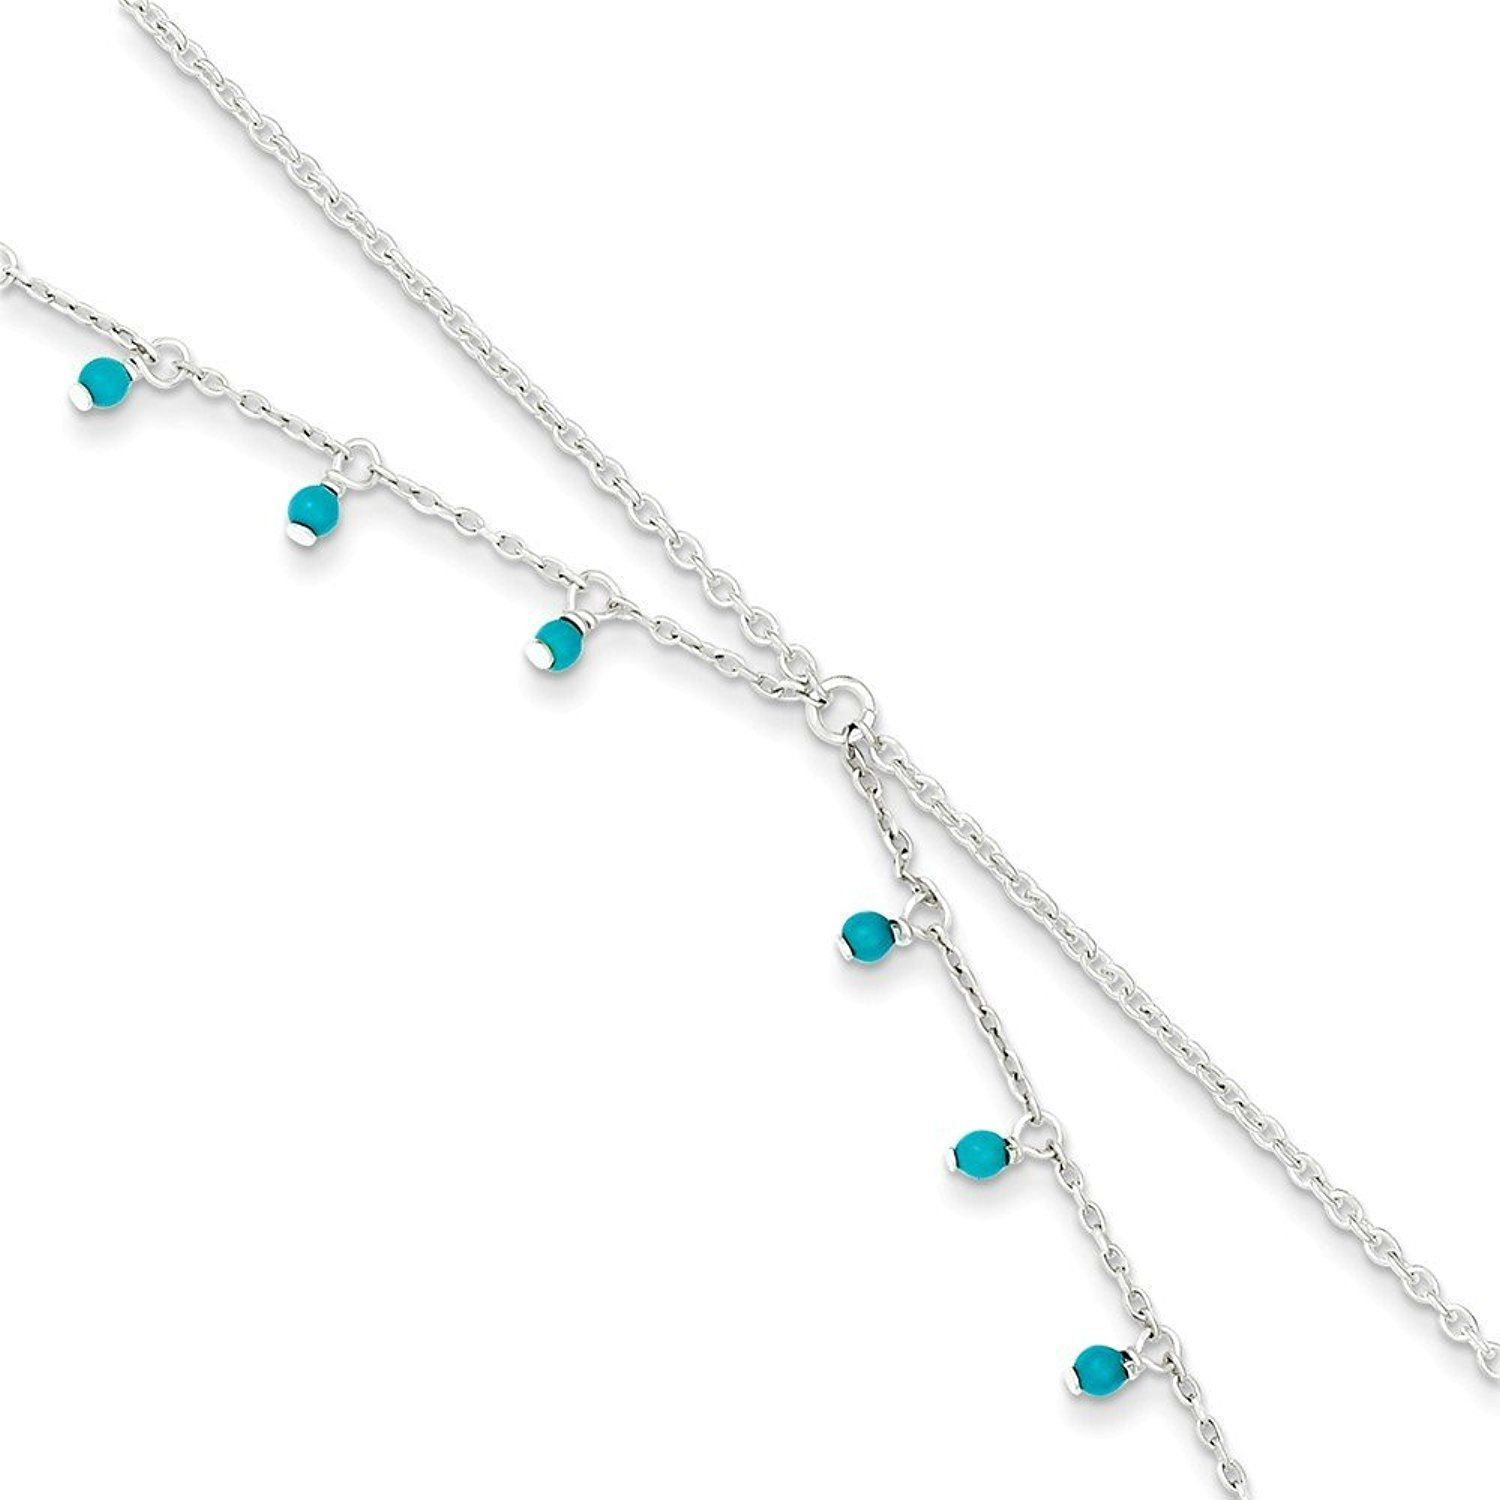 30 95 1mm thick solid sterling silver 925 Italian BALL bead chain necklace chocker bracelet anklet with spring ring clasp jewelry 75 25 35 15 85 60 65 70 100cm 40 50 80 20 90 55 45